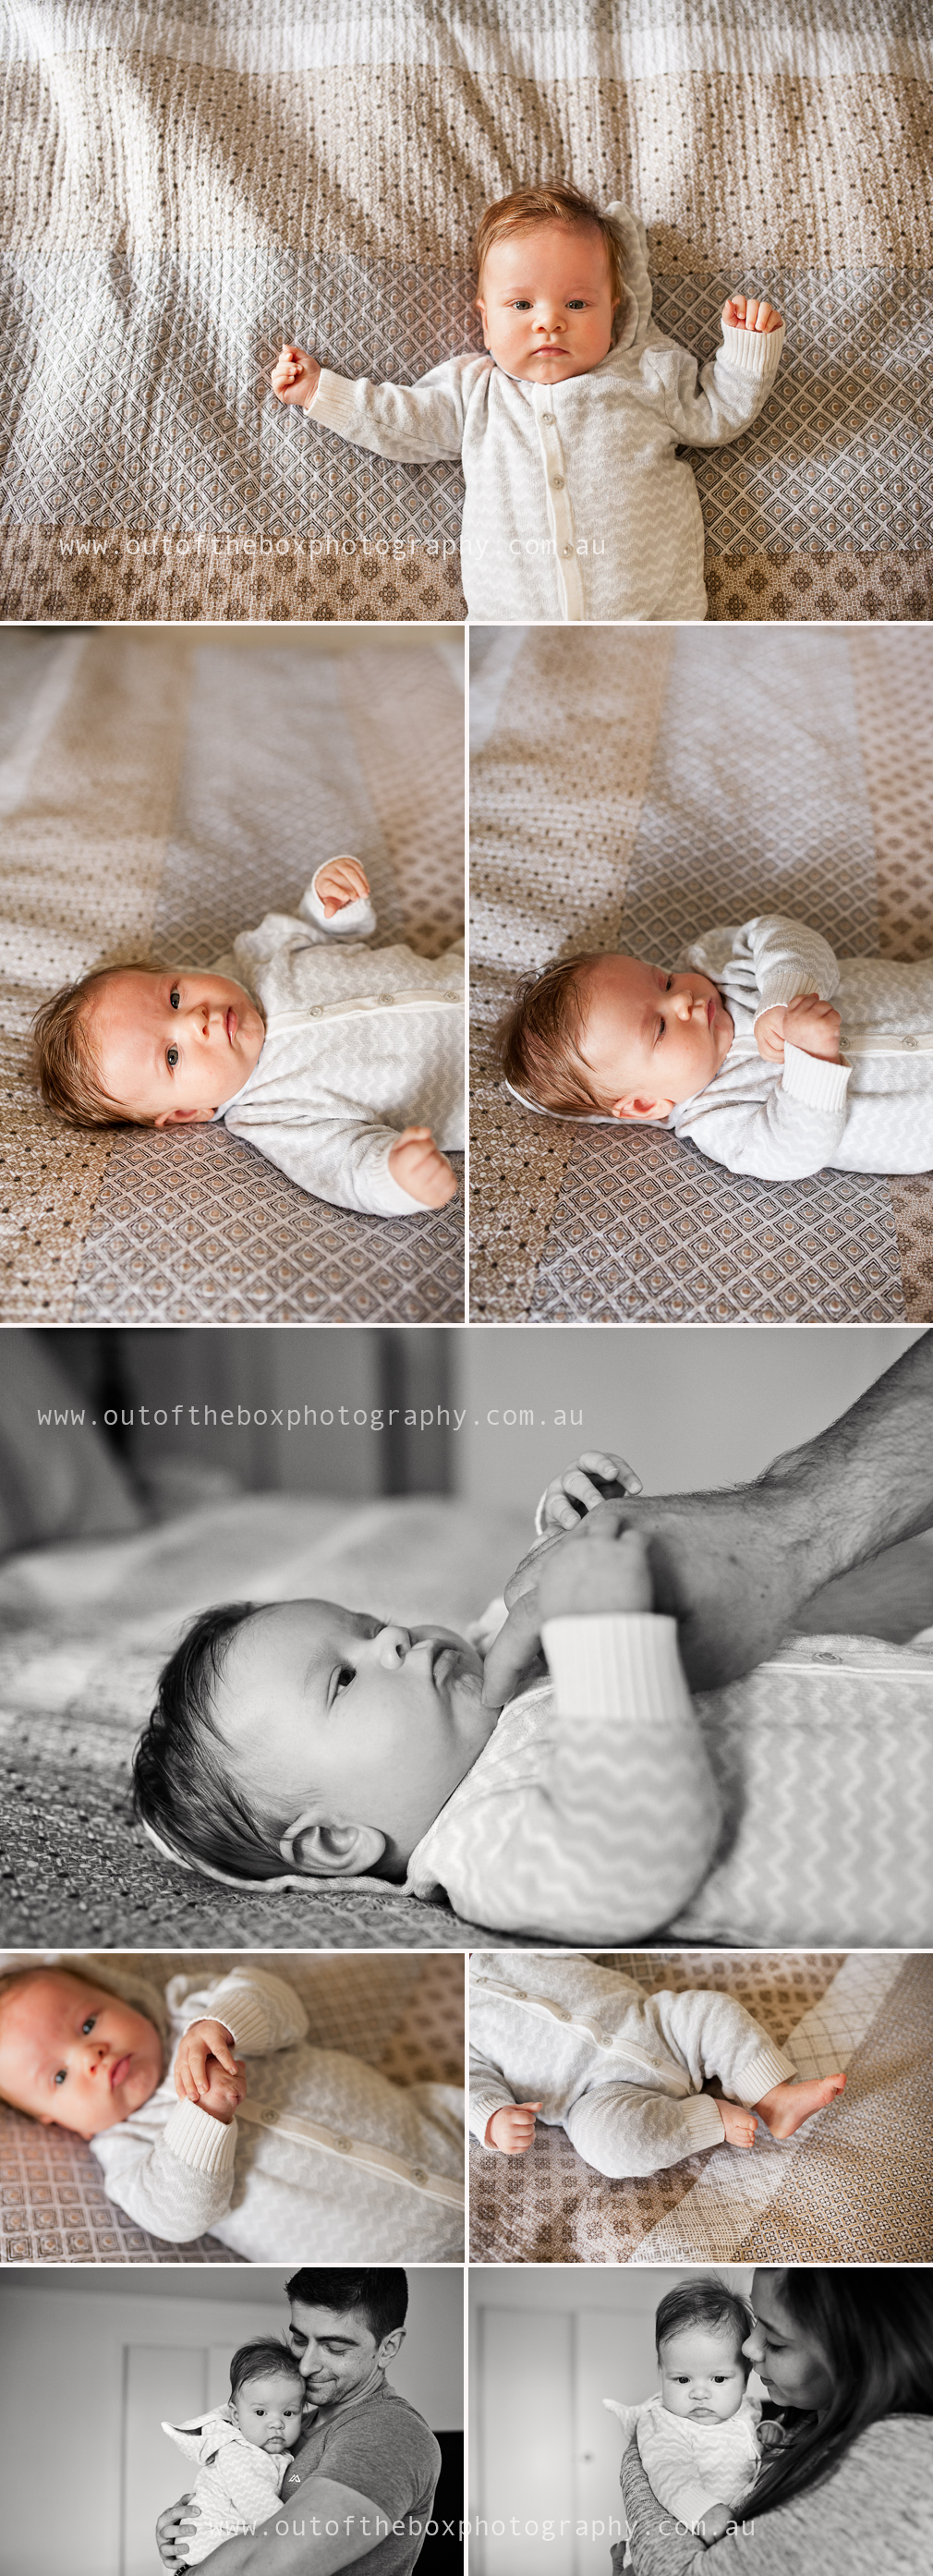 three-month-milestone-family-photography-2